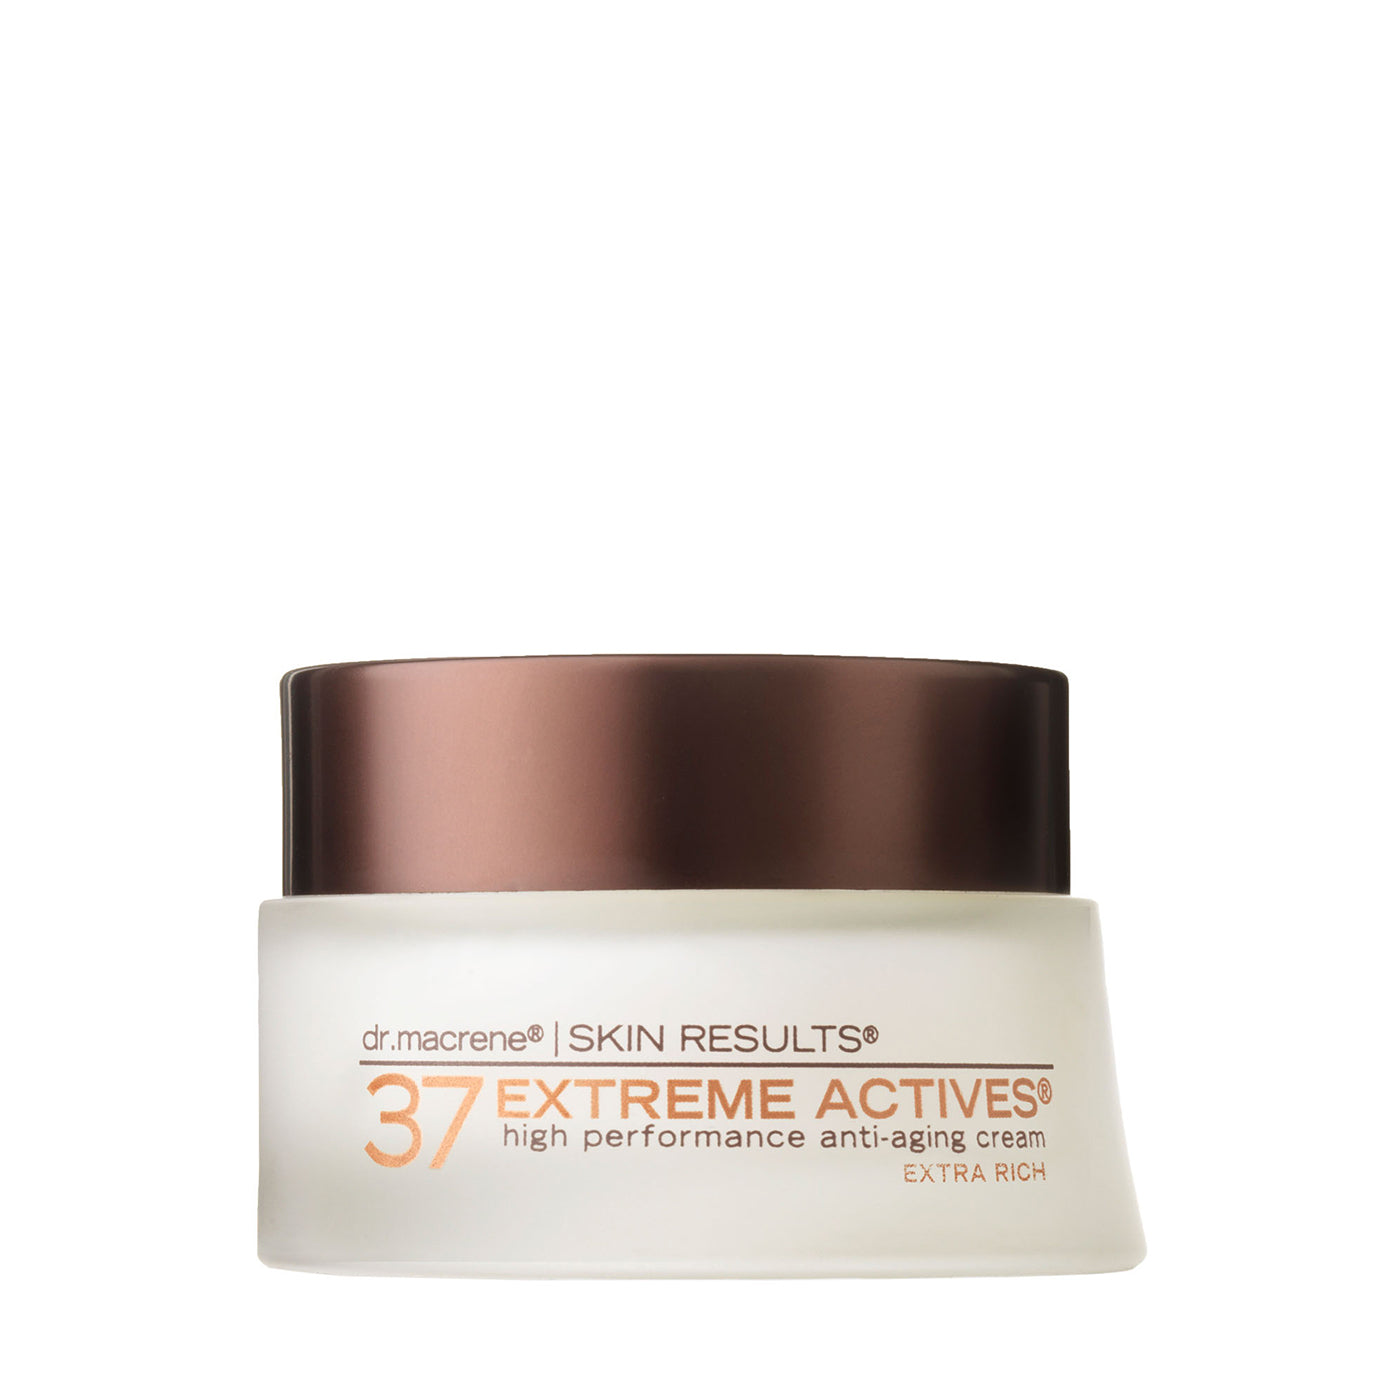 37 Extreme Actives Extra Rich 1oz